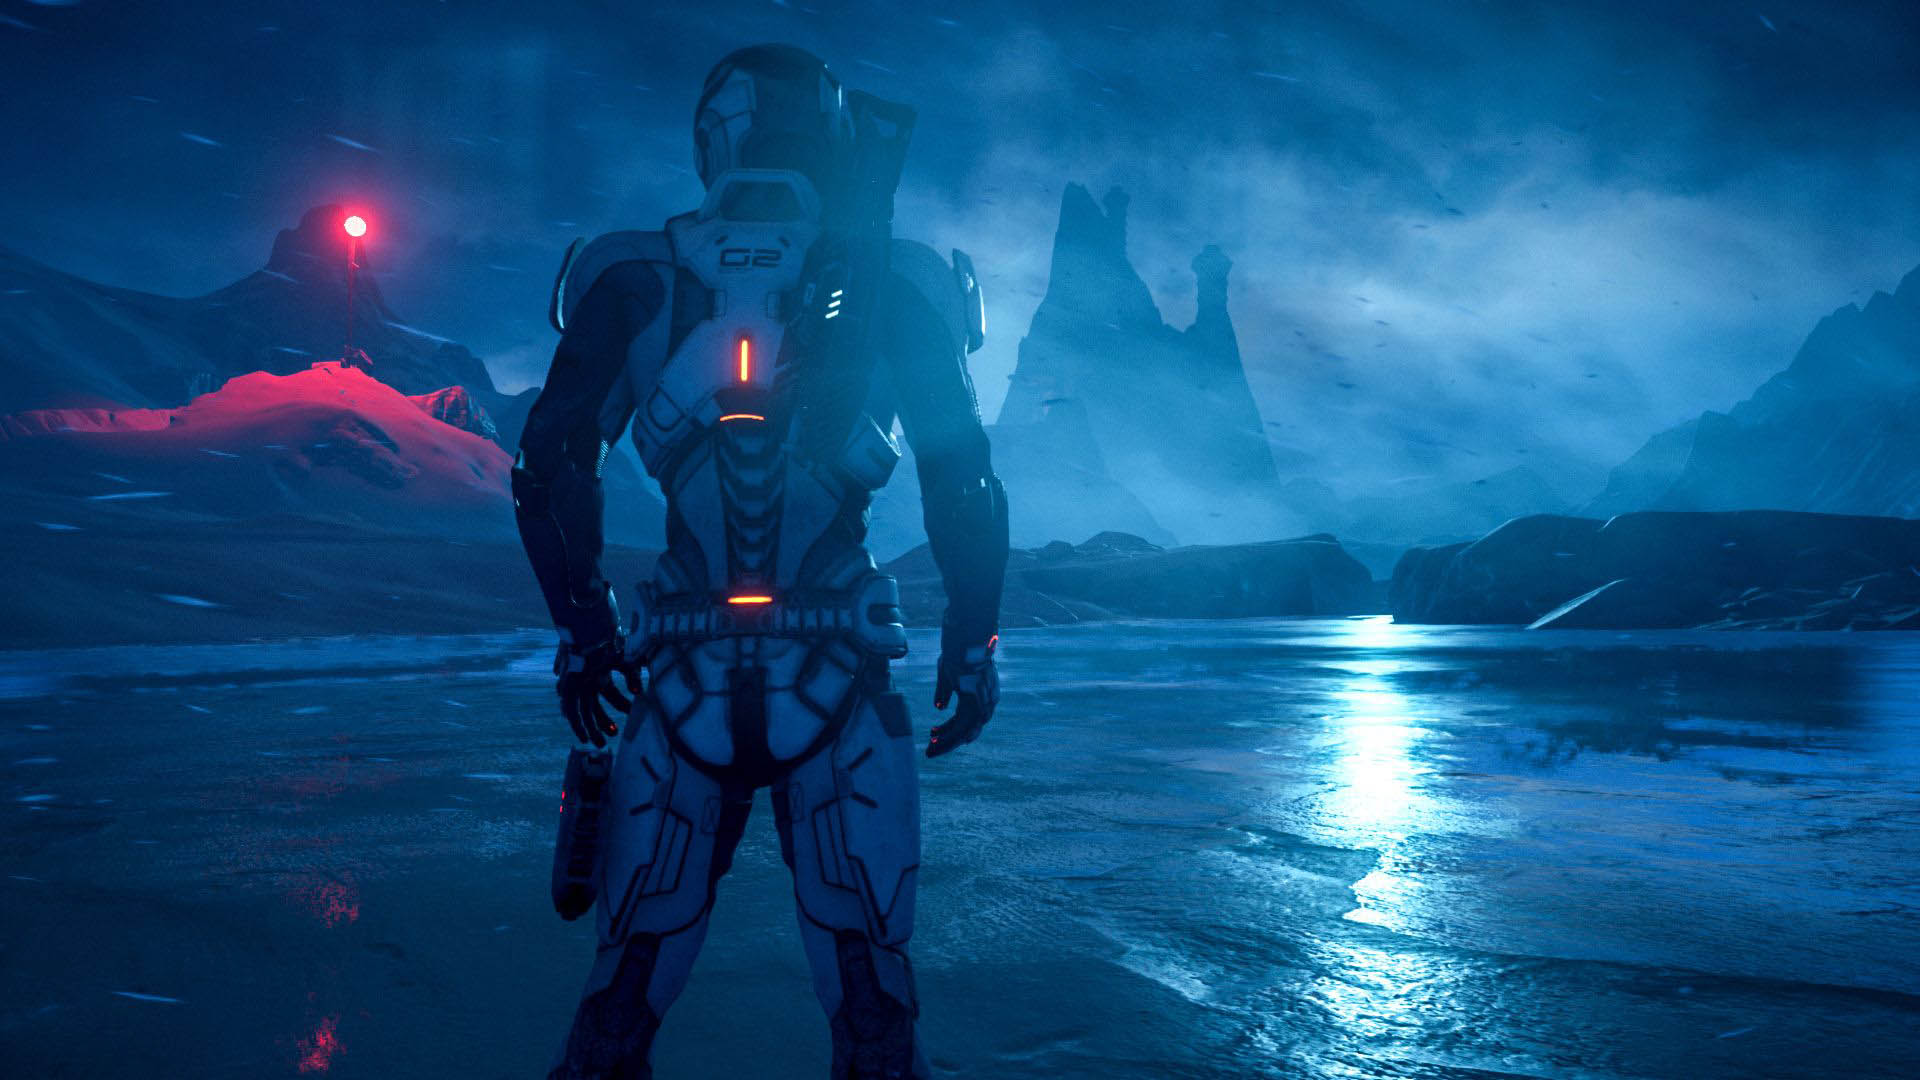 Mass Effect: Andromeda Features More Than 1,200 Speaking Characters